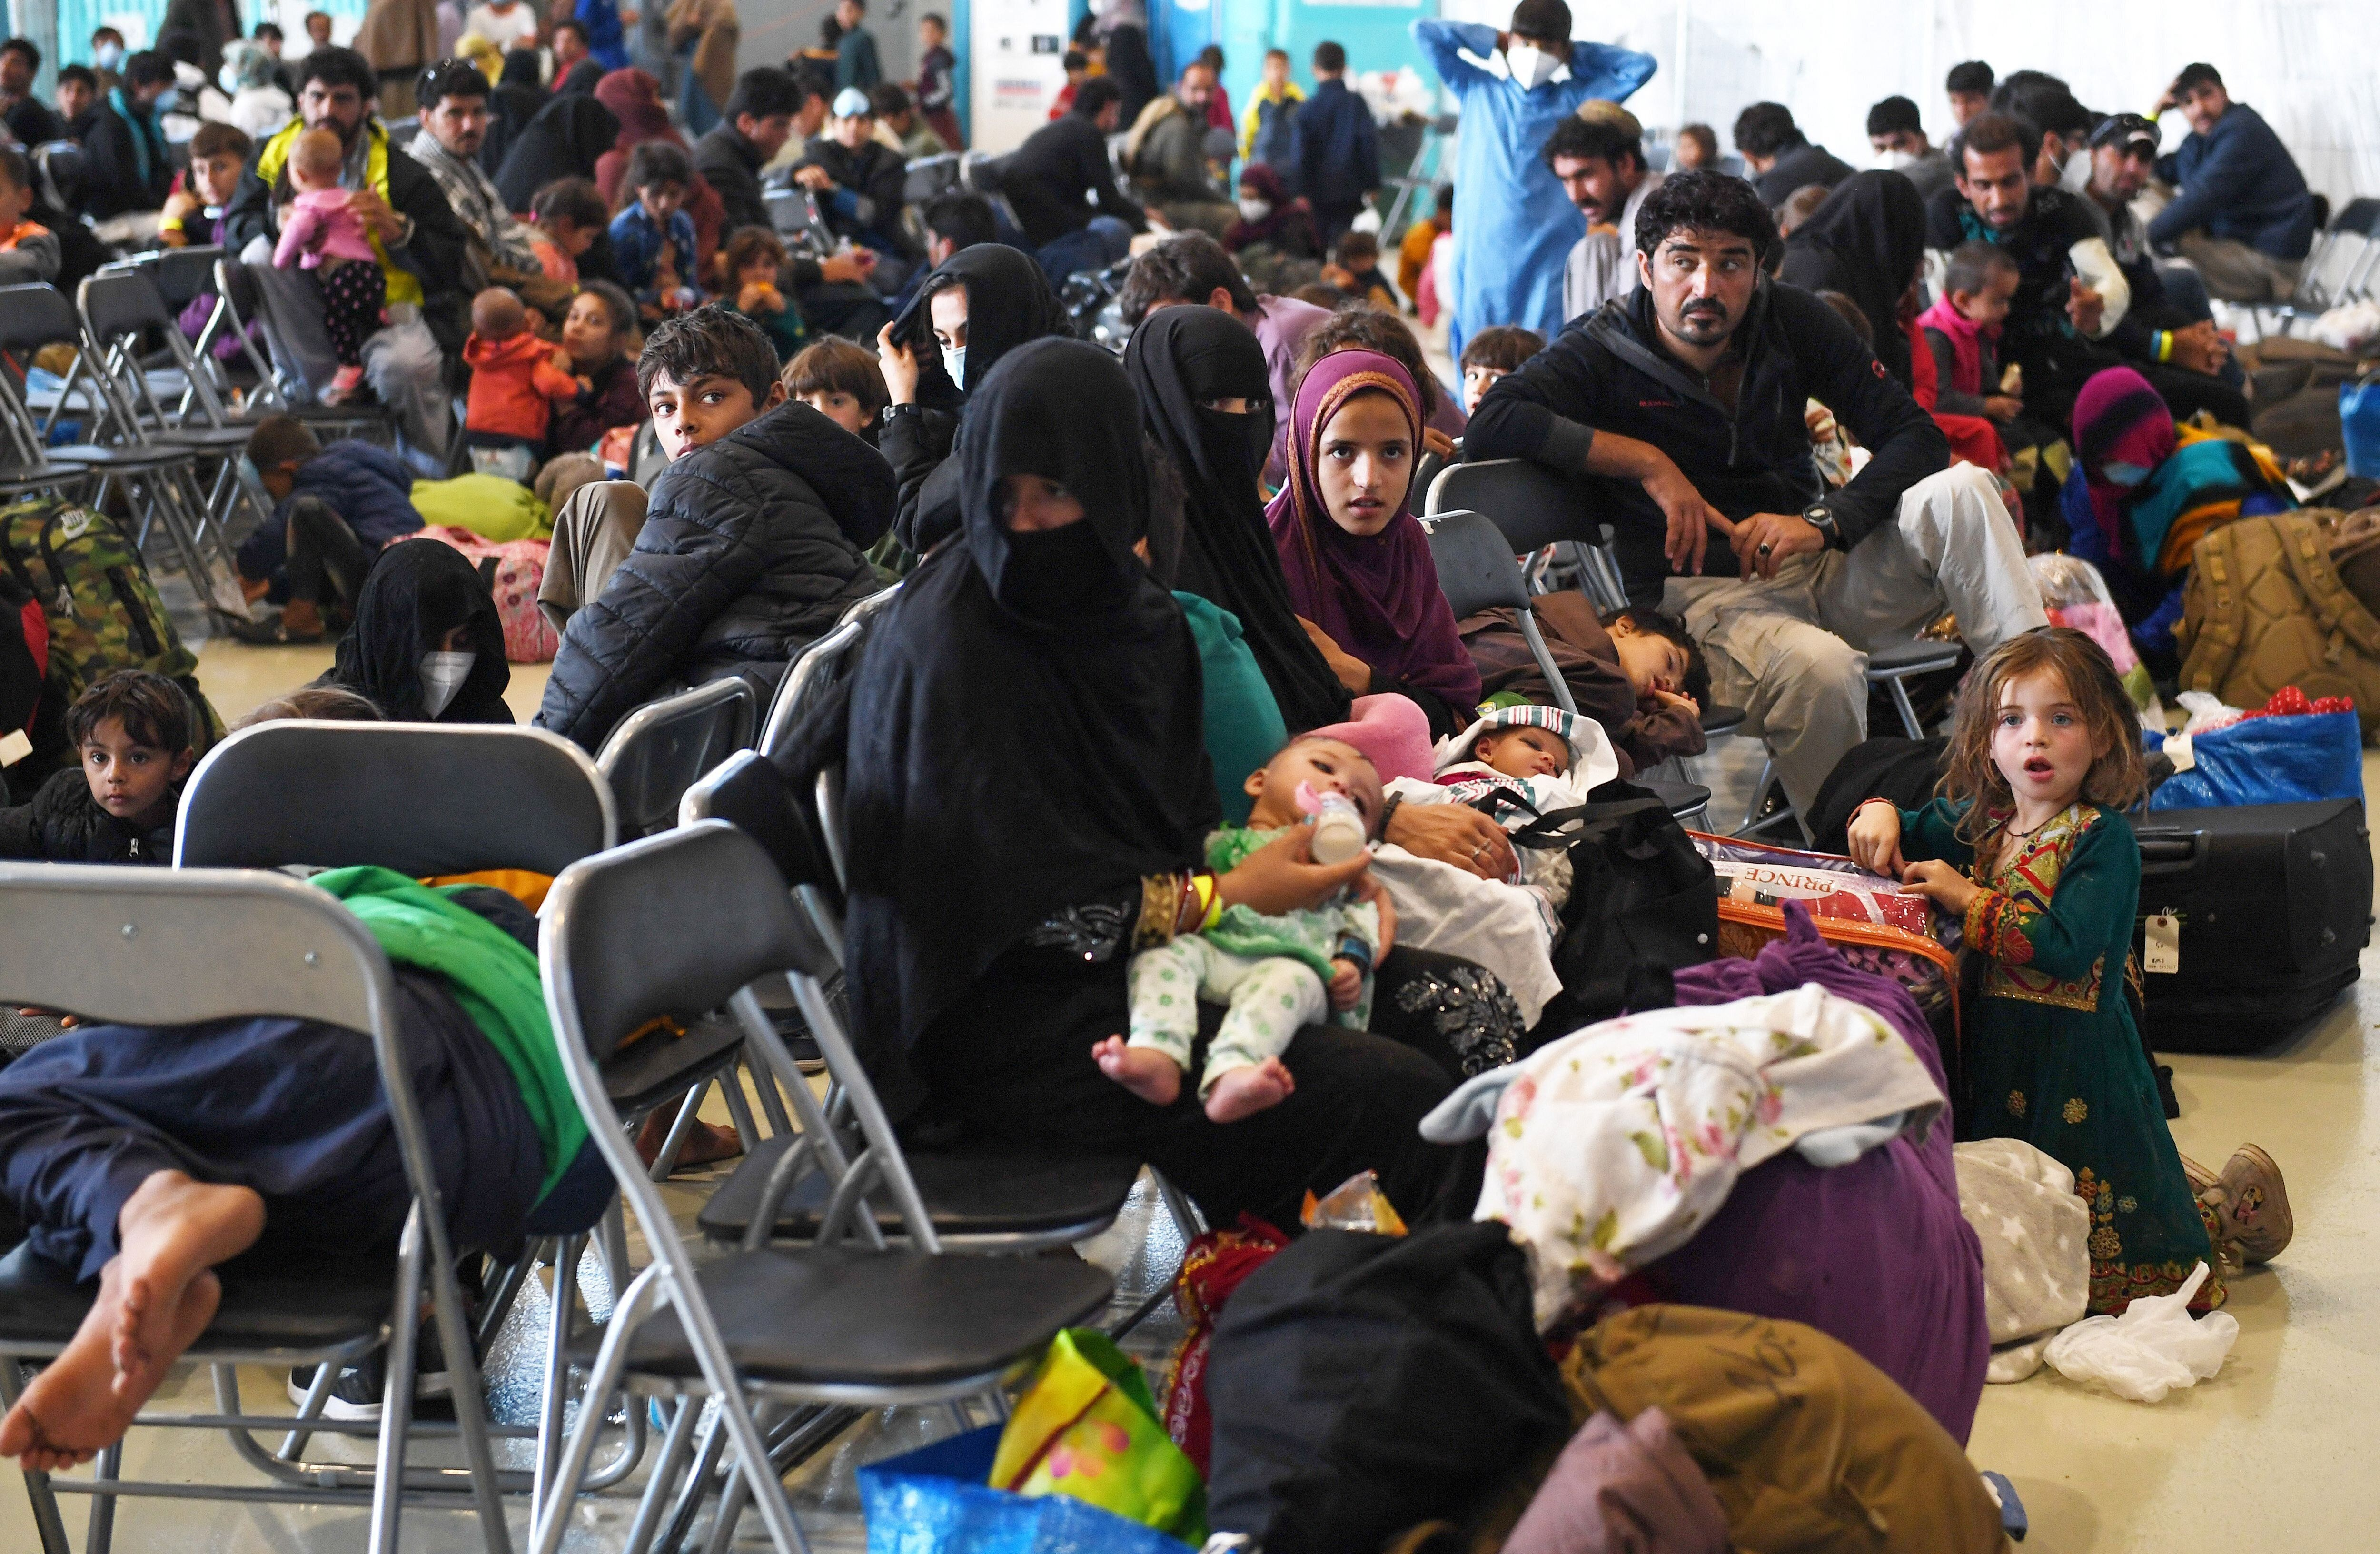 Afghan refugees are seen being processed at Ramstein Air Base in Germany on September 8.